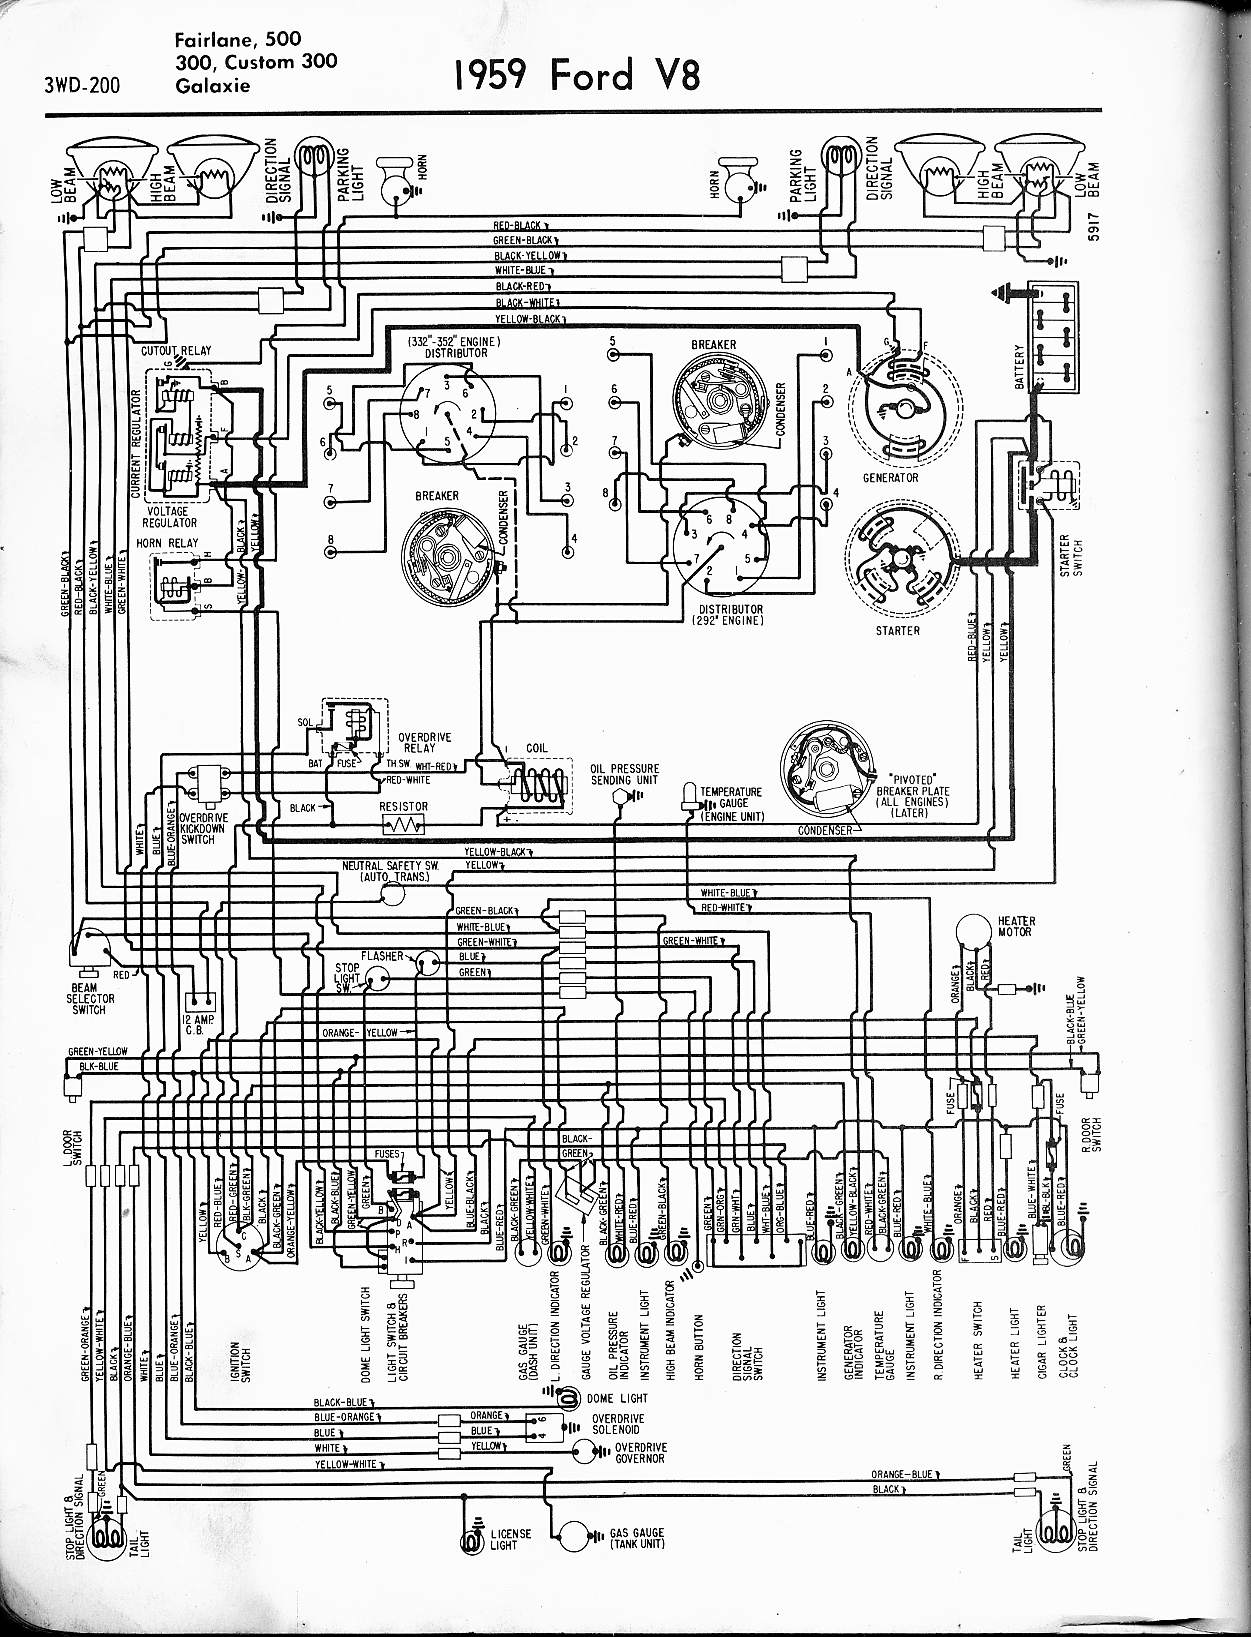 1963 Ford Galaxie Wiring Diagram Schematics 2012 Fiat 500 Schematic 57 65 Diagrams Dodge Dart 1959 V8 Fairlane